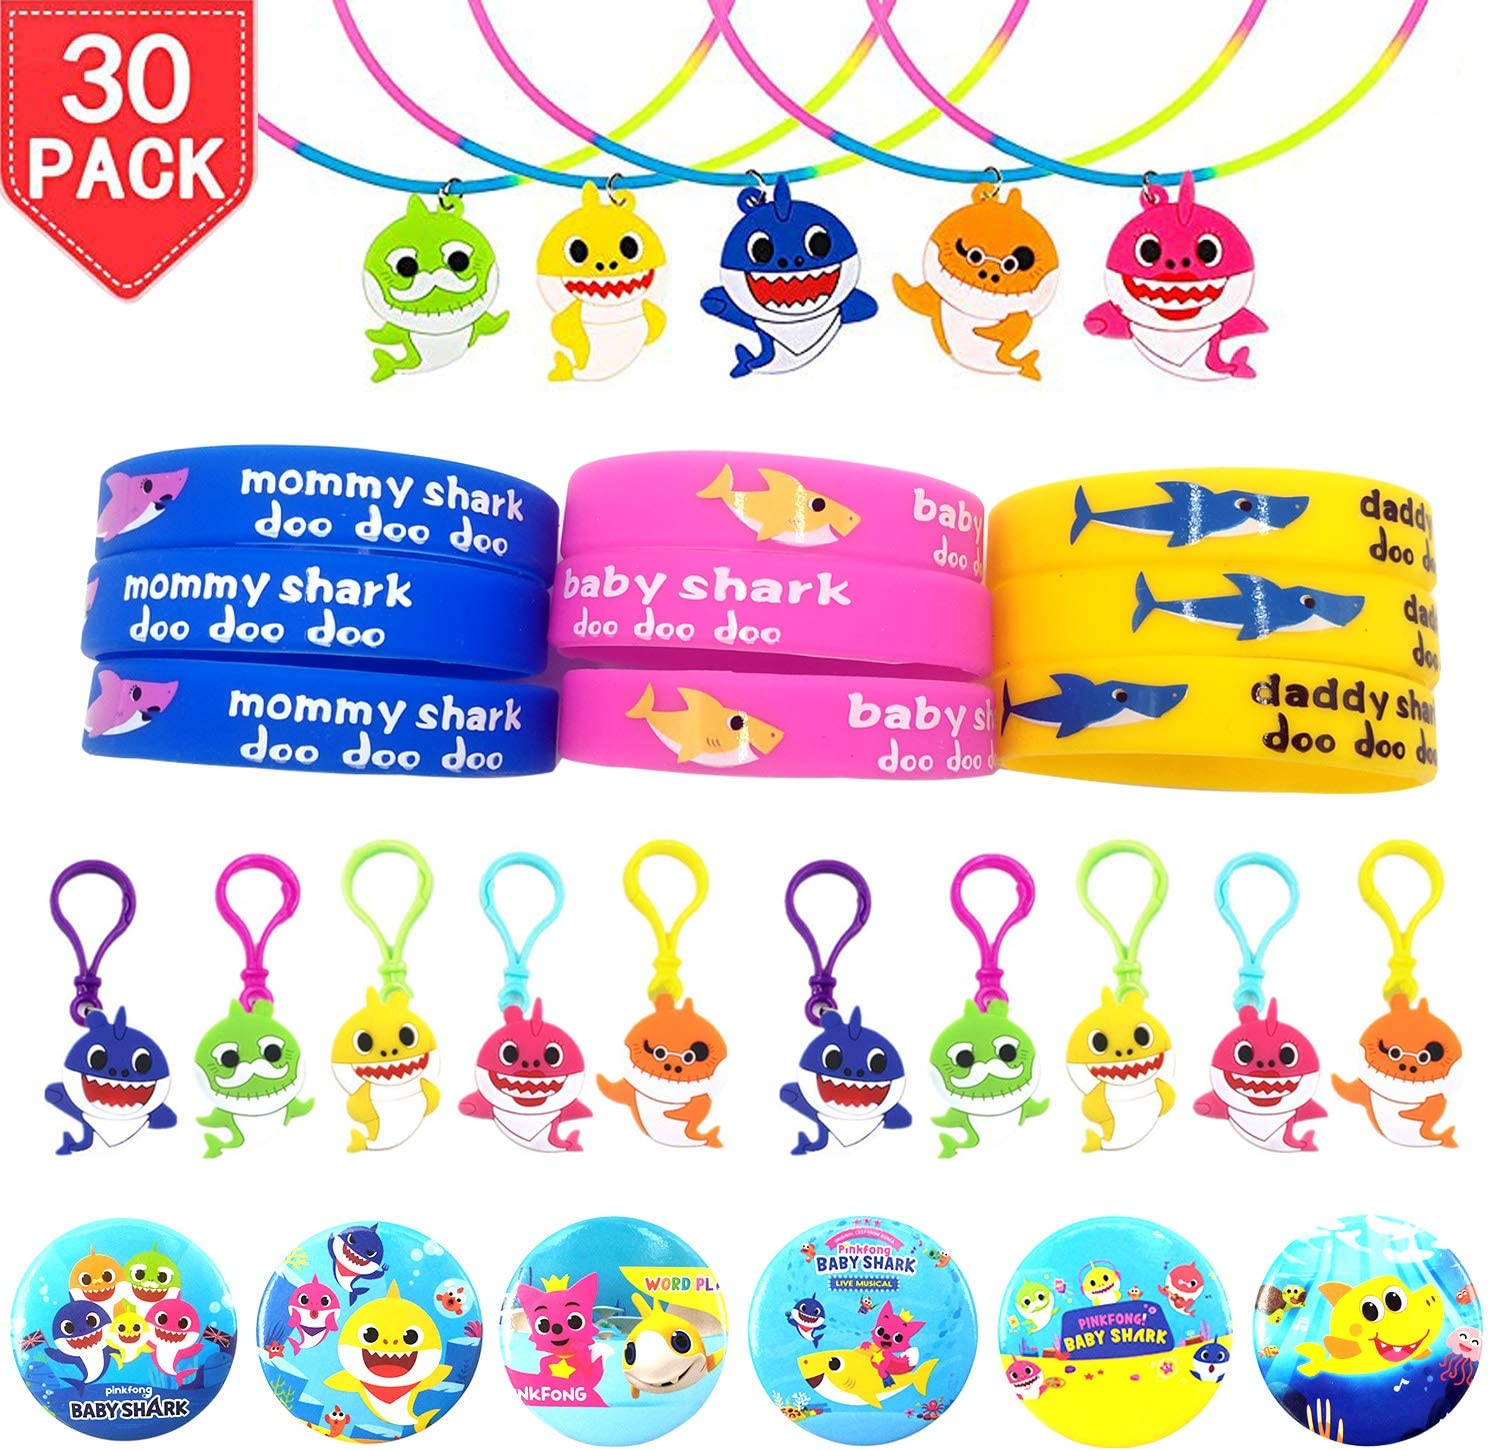 Time-killer Baby Shark Party Favors 30 Pack - Rubber Bracelets/Keychains/Necklace/Badge - Shark Themed Birthday Party Supplies for Kids Treat Bags Gift Fillers (Baby Shark-30)